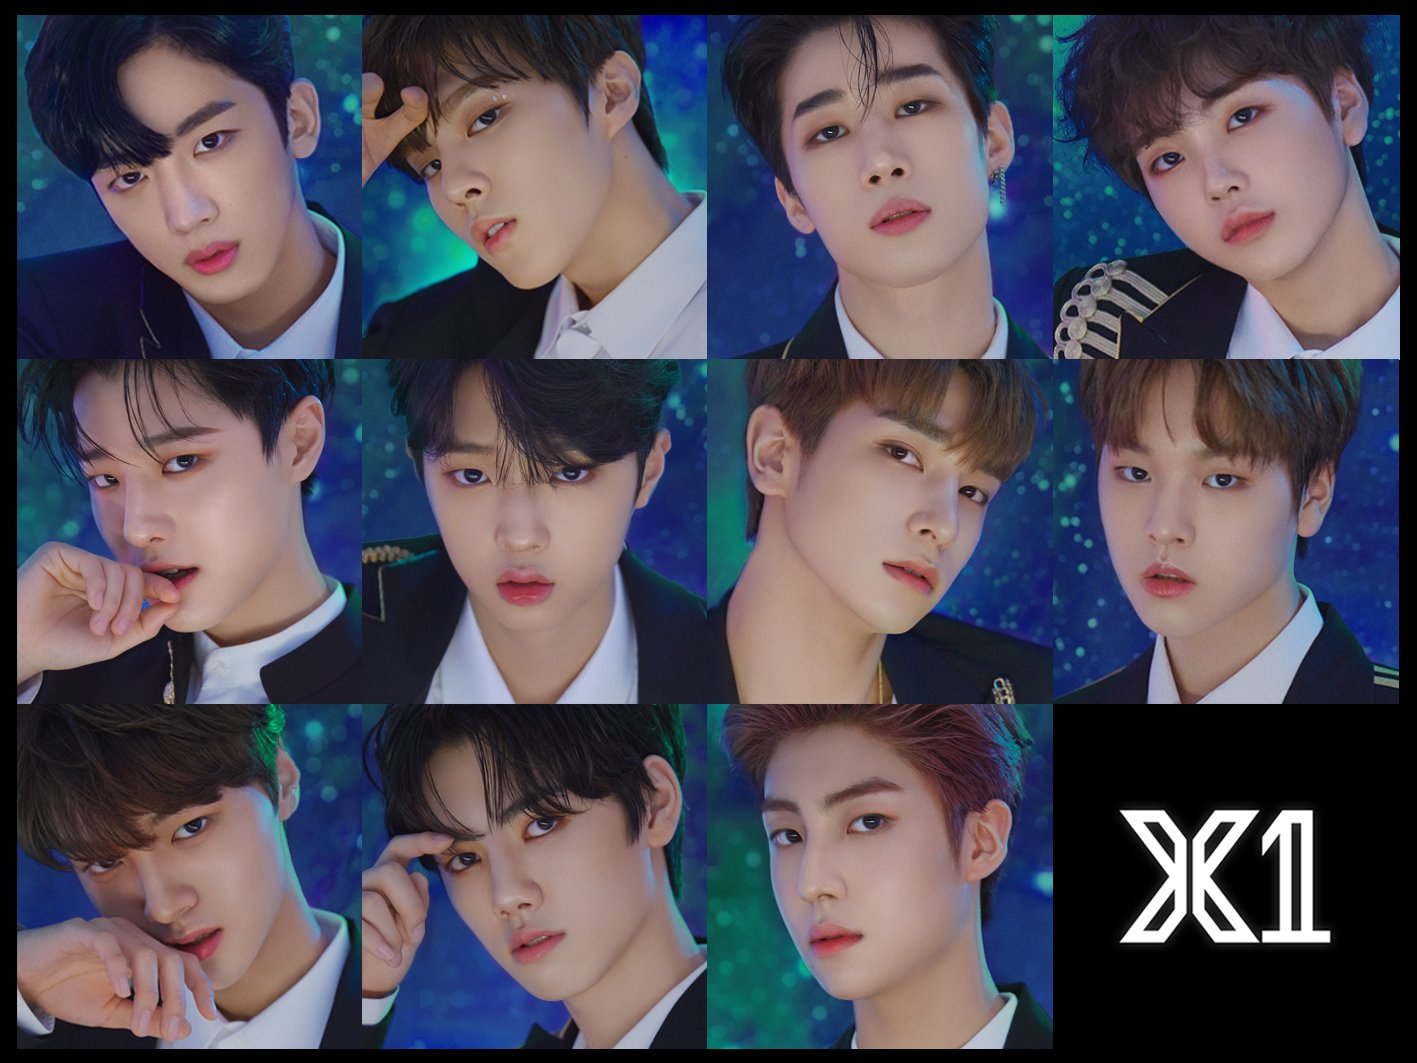 x1, x1 profile, x1 height, x1 members, x1 debut, x1 facts, x1 age, x1 debut, x1 produce x 101, x1 swing